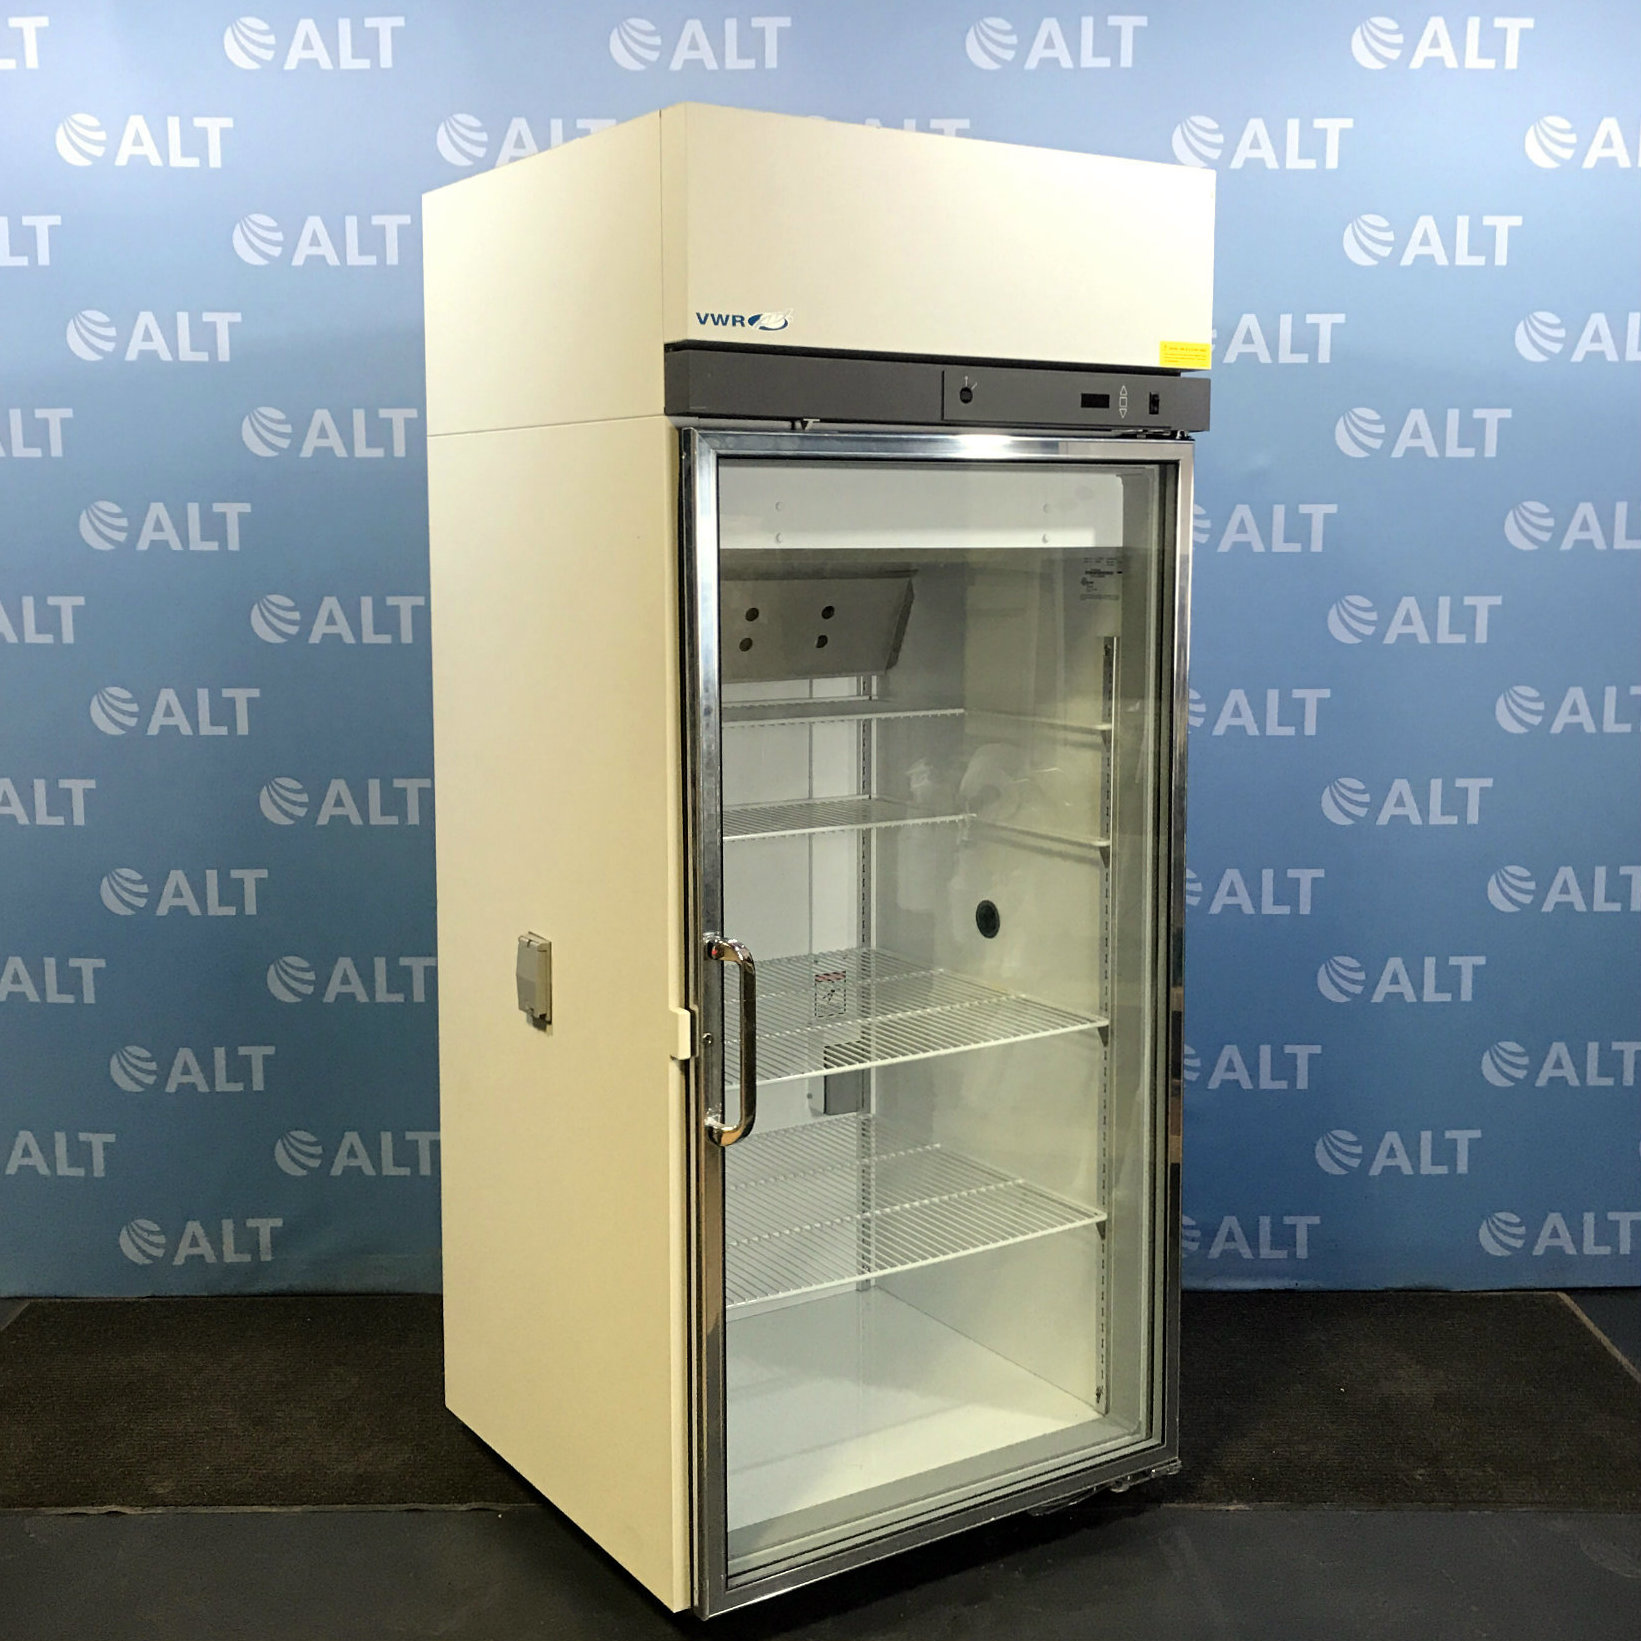 VWR VCR430A21 Single Door Chromatography Refrigerator Image